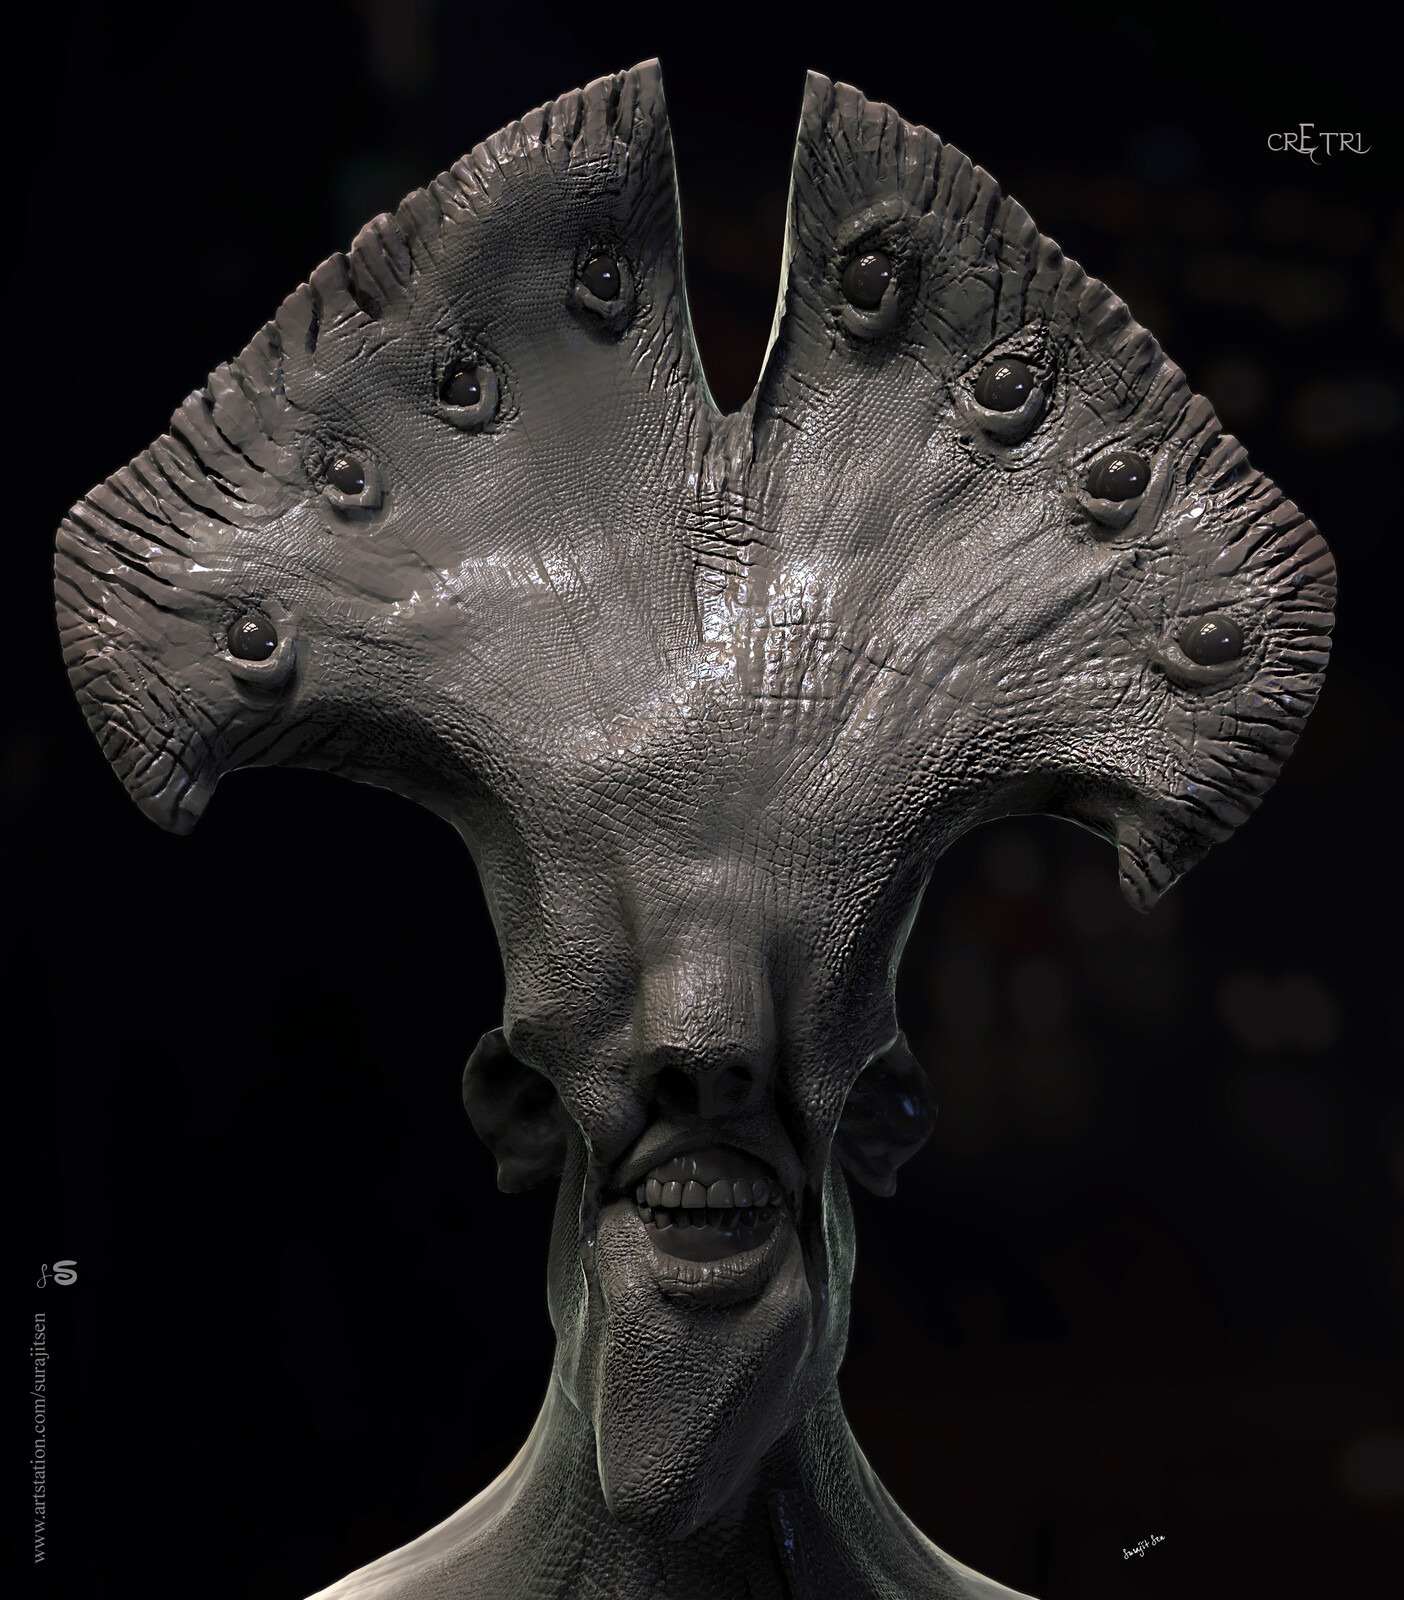 CRETR1